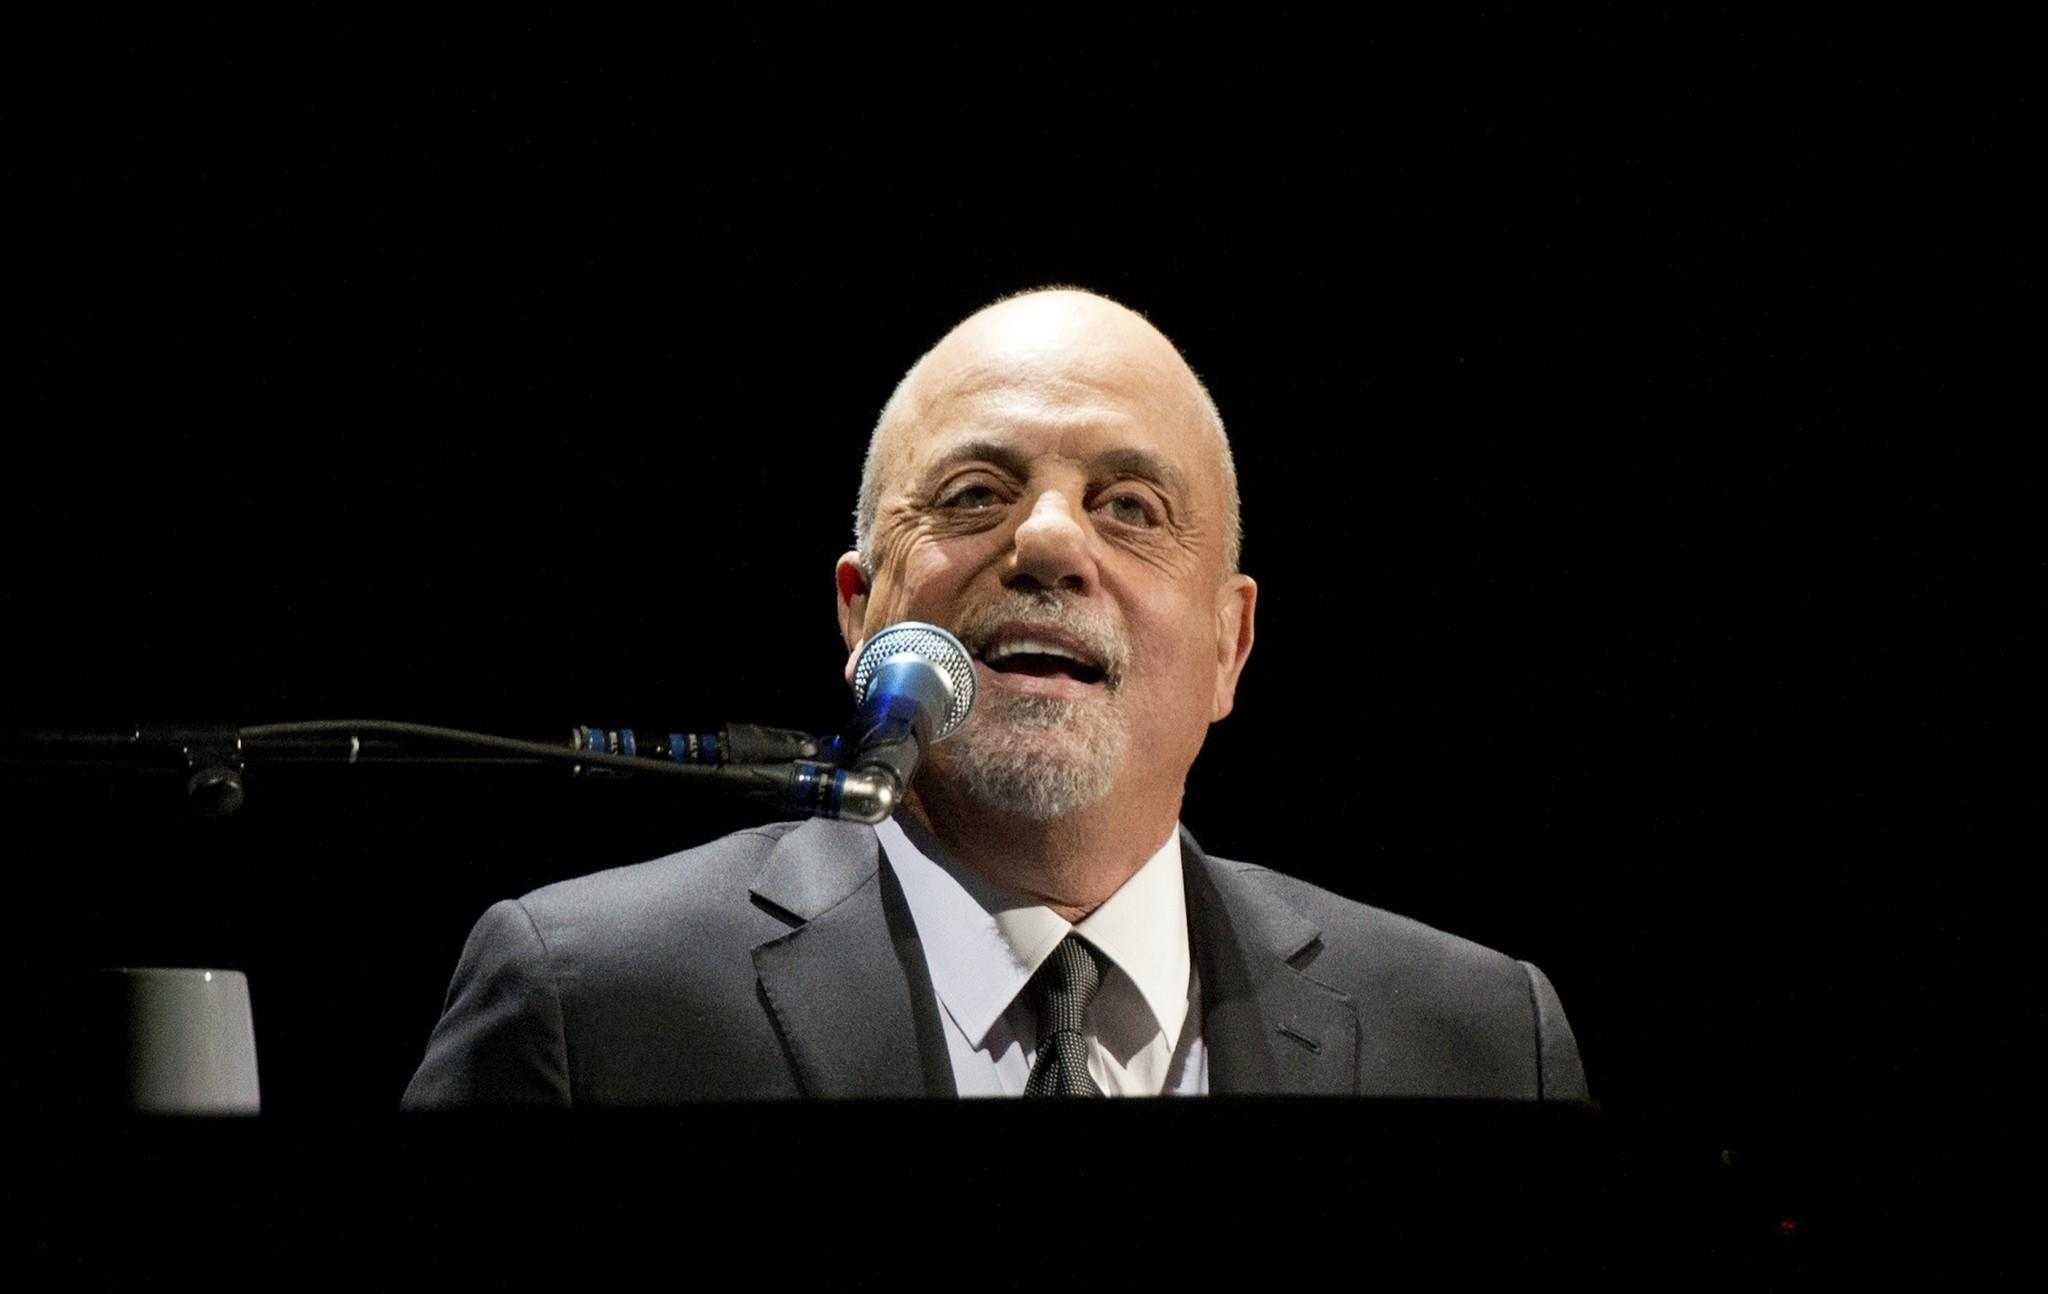 NEW YORK, NY - DECEMBER 31: Billy Joel performs at Barclays Center on December 31, 2013 in New York City. (Photo by Noam Galai/Getty Images) ** OUTS - ELSENT, FPG, TCN - OUTS * NM, PH, VA if sourced by CT, LA or MoD ** ORG XMIT: 458215341